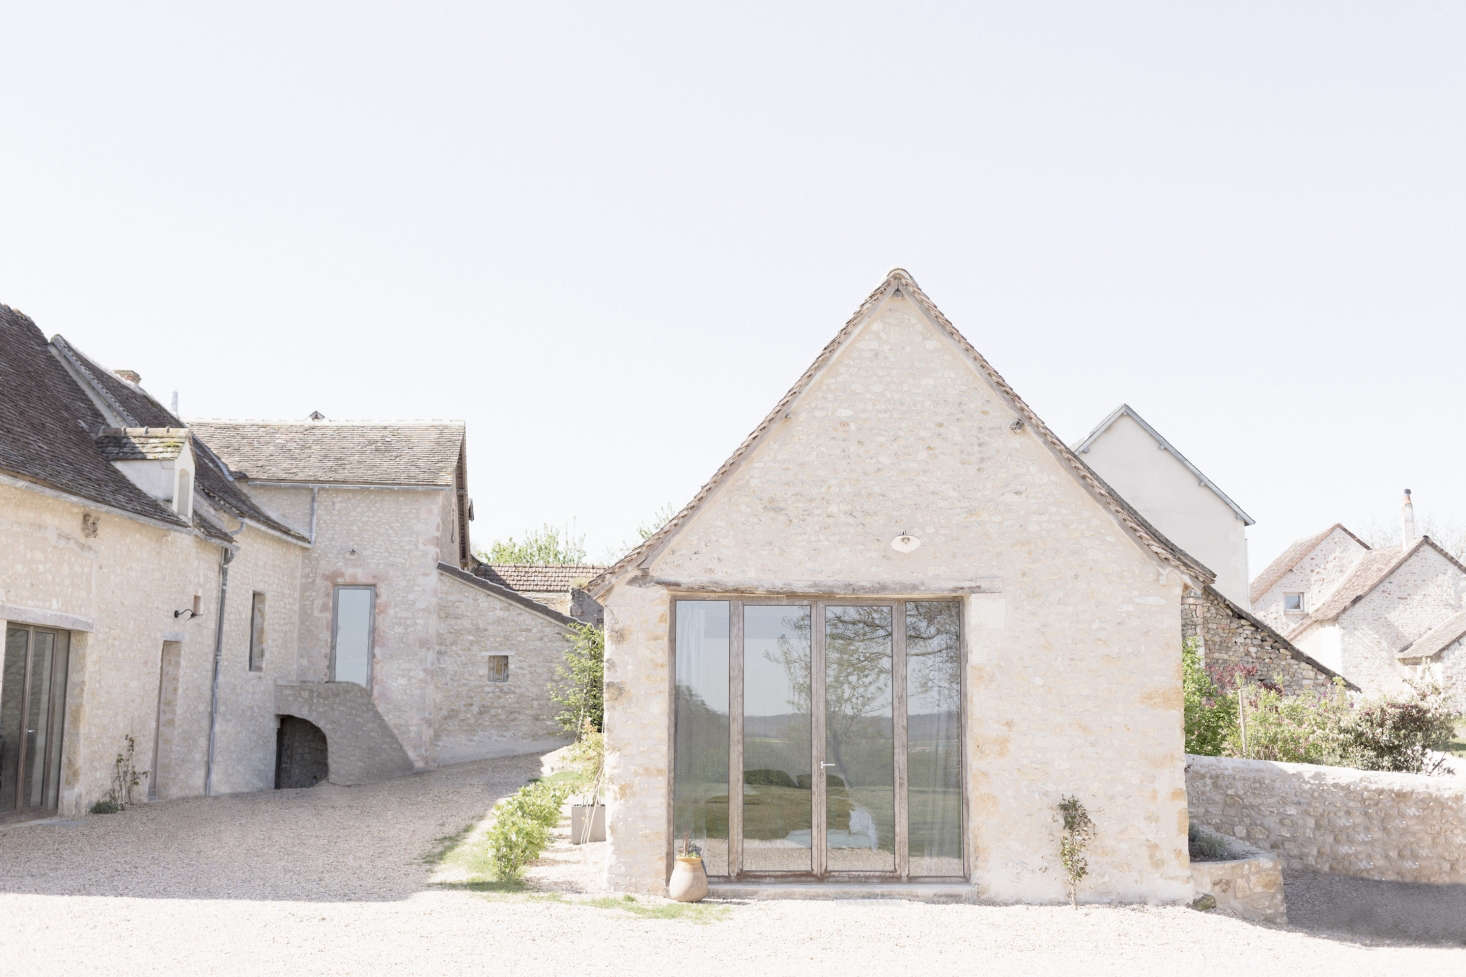 The farmhouse sits comfortably in the context of its surrounding village.